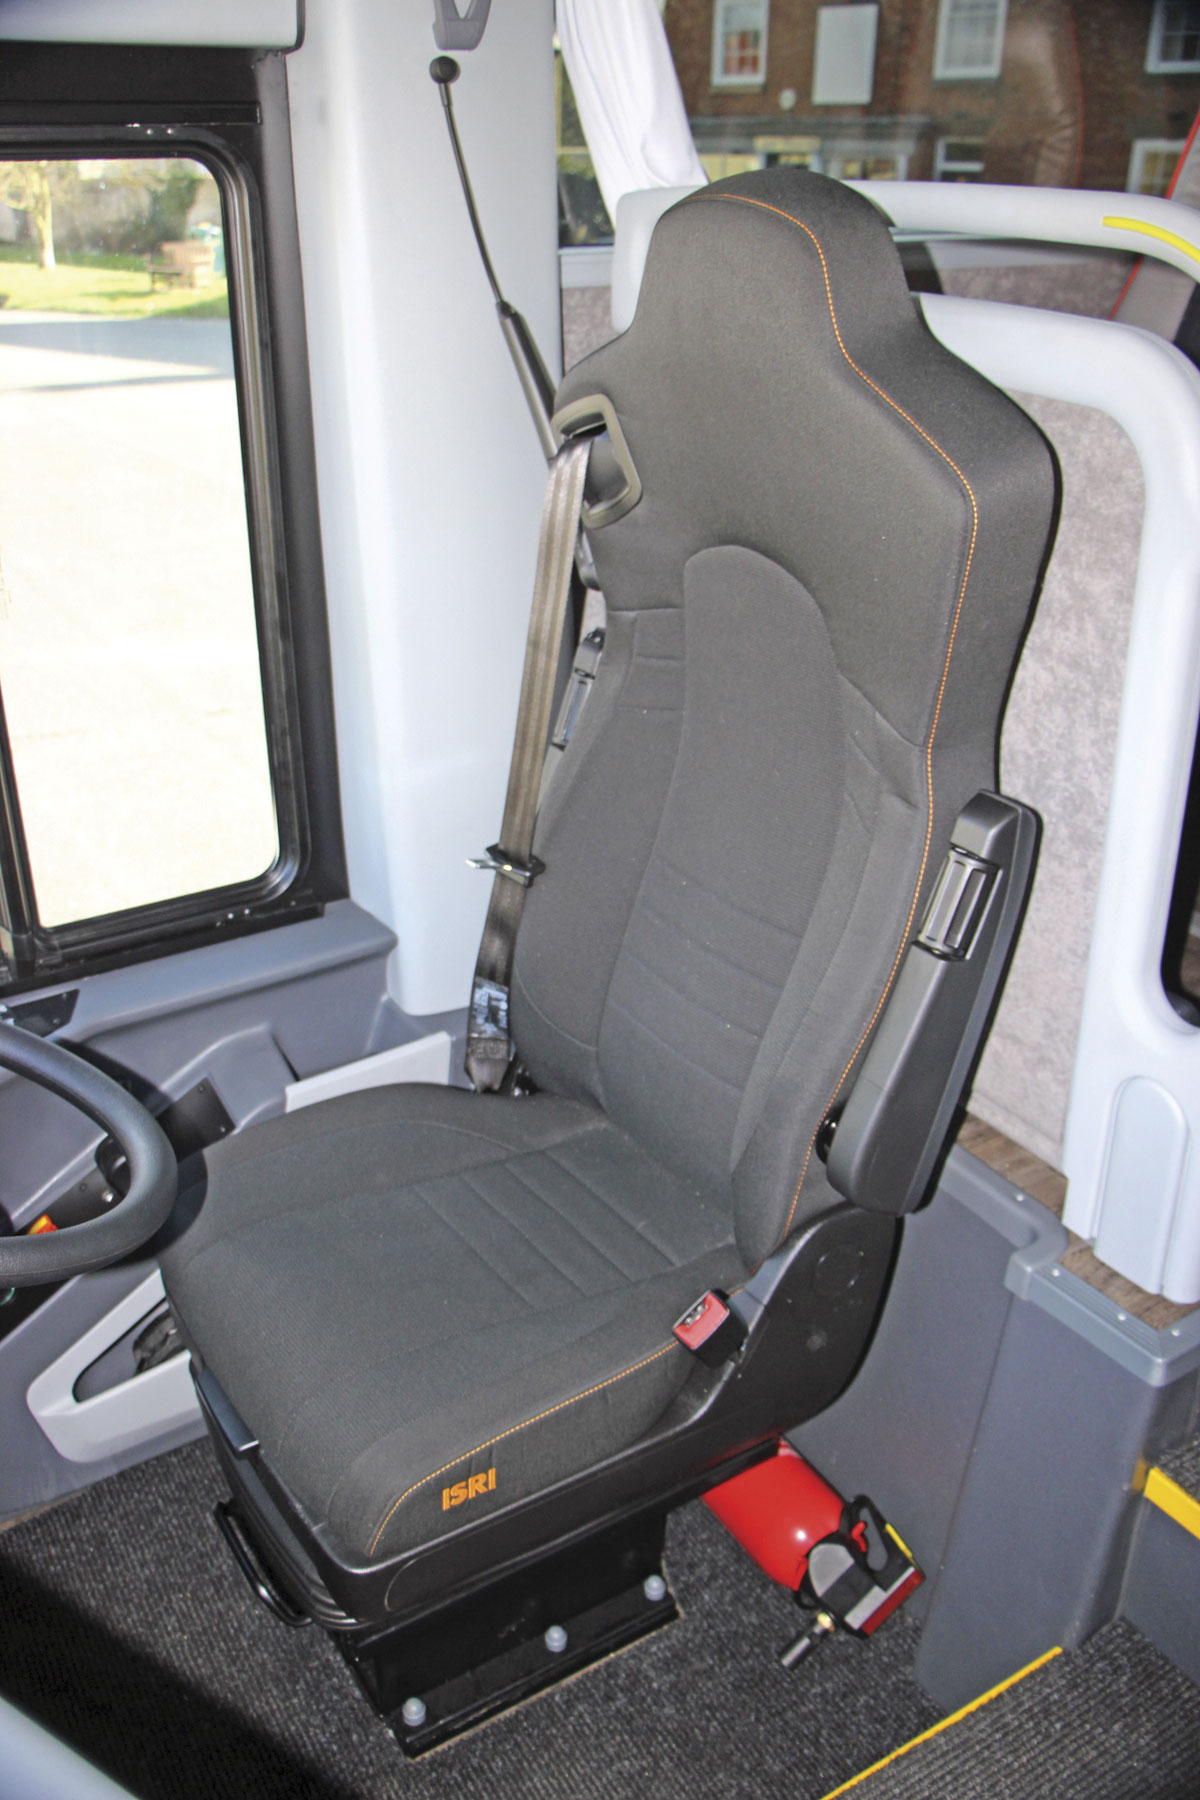 The standard driver's seat is a comfortable Isri air suspended unit